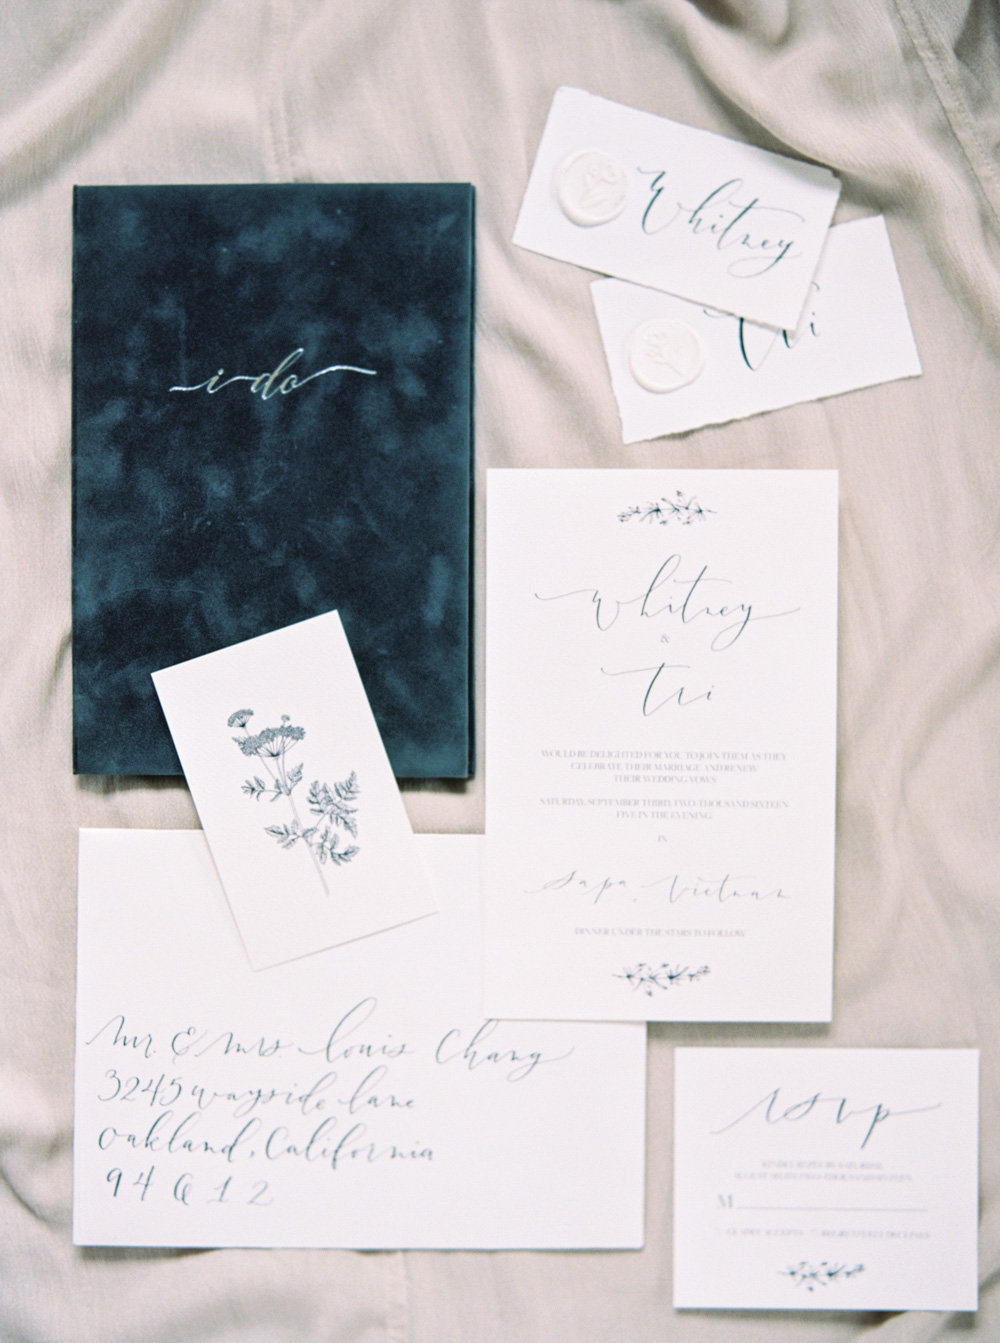 Katie Grant Photography | Wedding Story Writer Vow Book